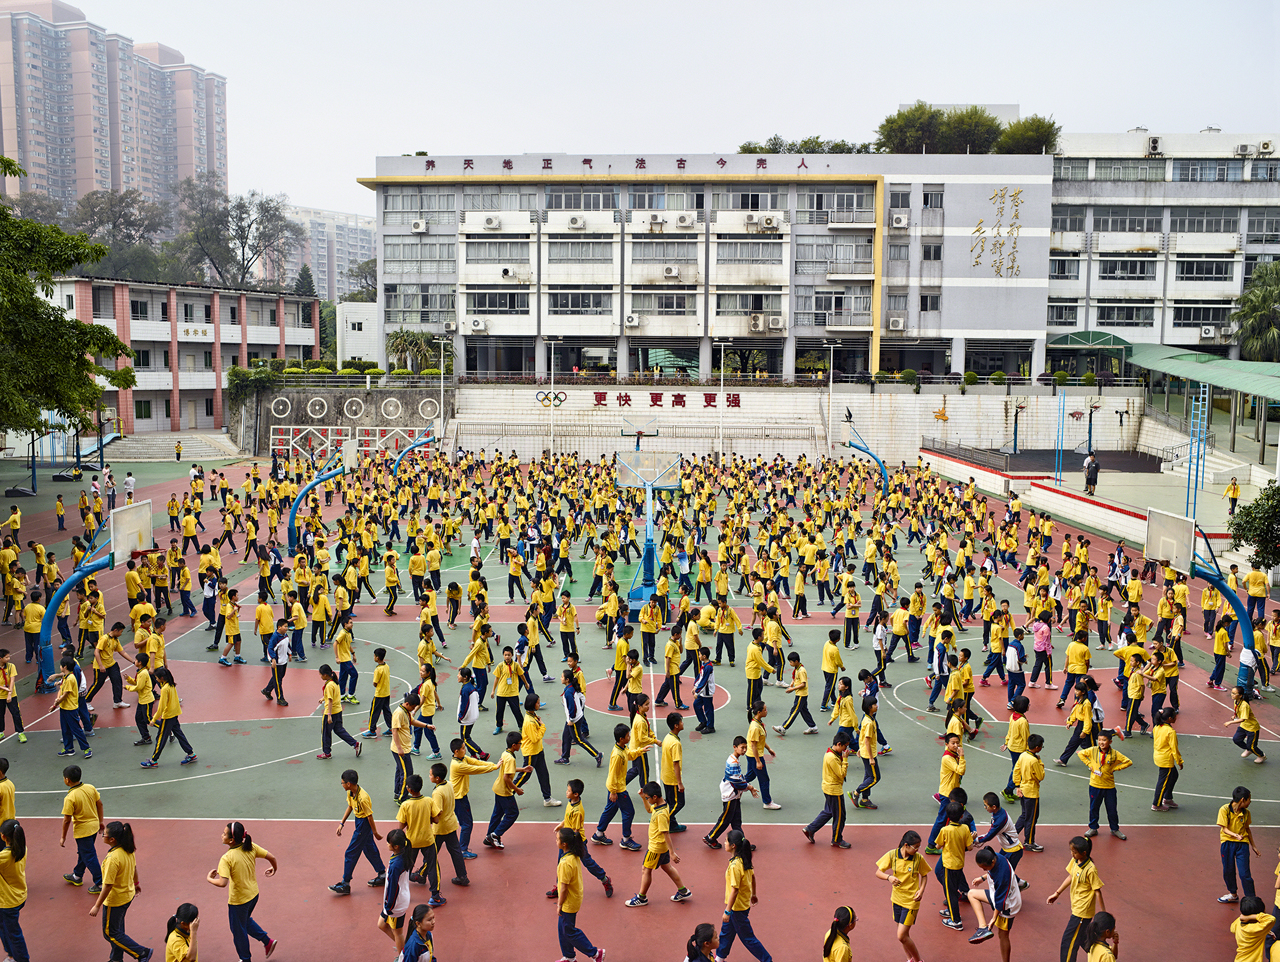 JAMES MOLLISON Affiliated Primary School of South China Normal University, Guangzhou, China, June 13, 2014